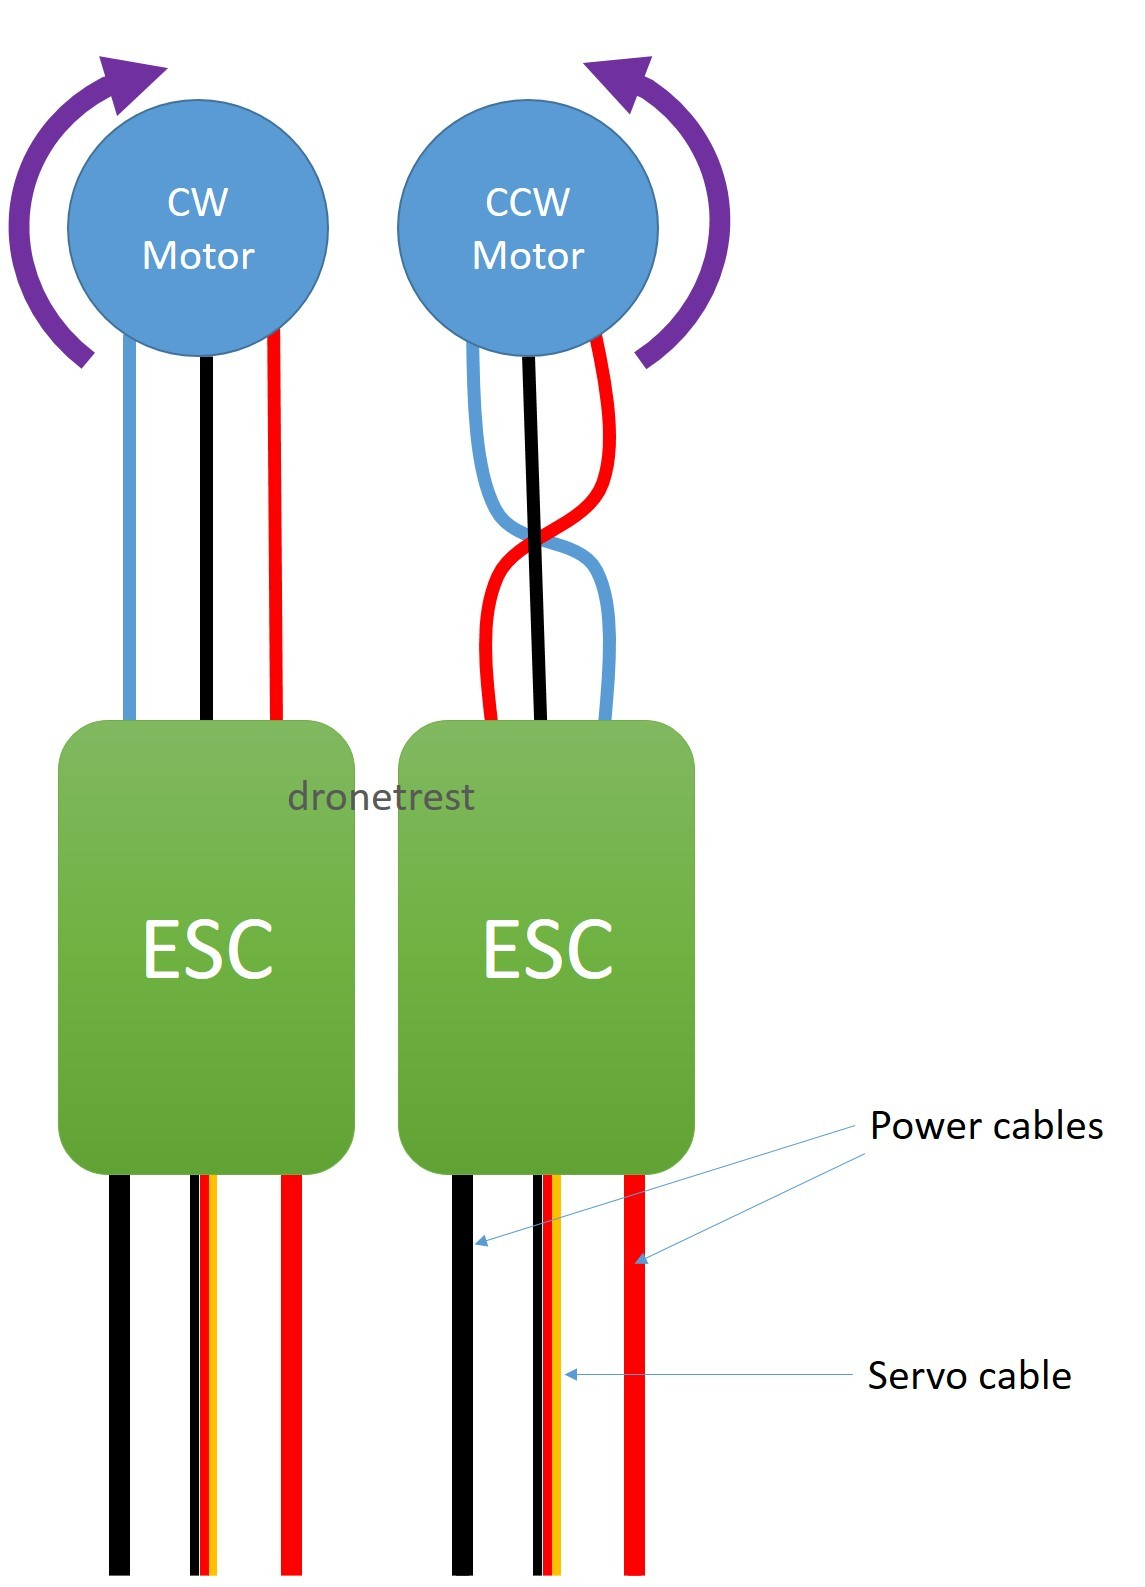 Esc To Motor Connection Guide How Reverse Your Direction Understanding Wiring Diagrams Guide1145x1587 104 Kb